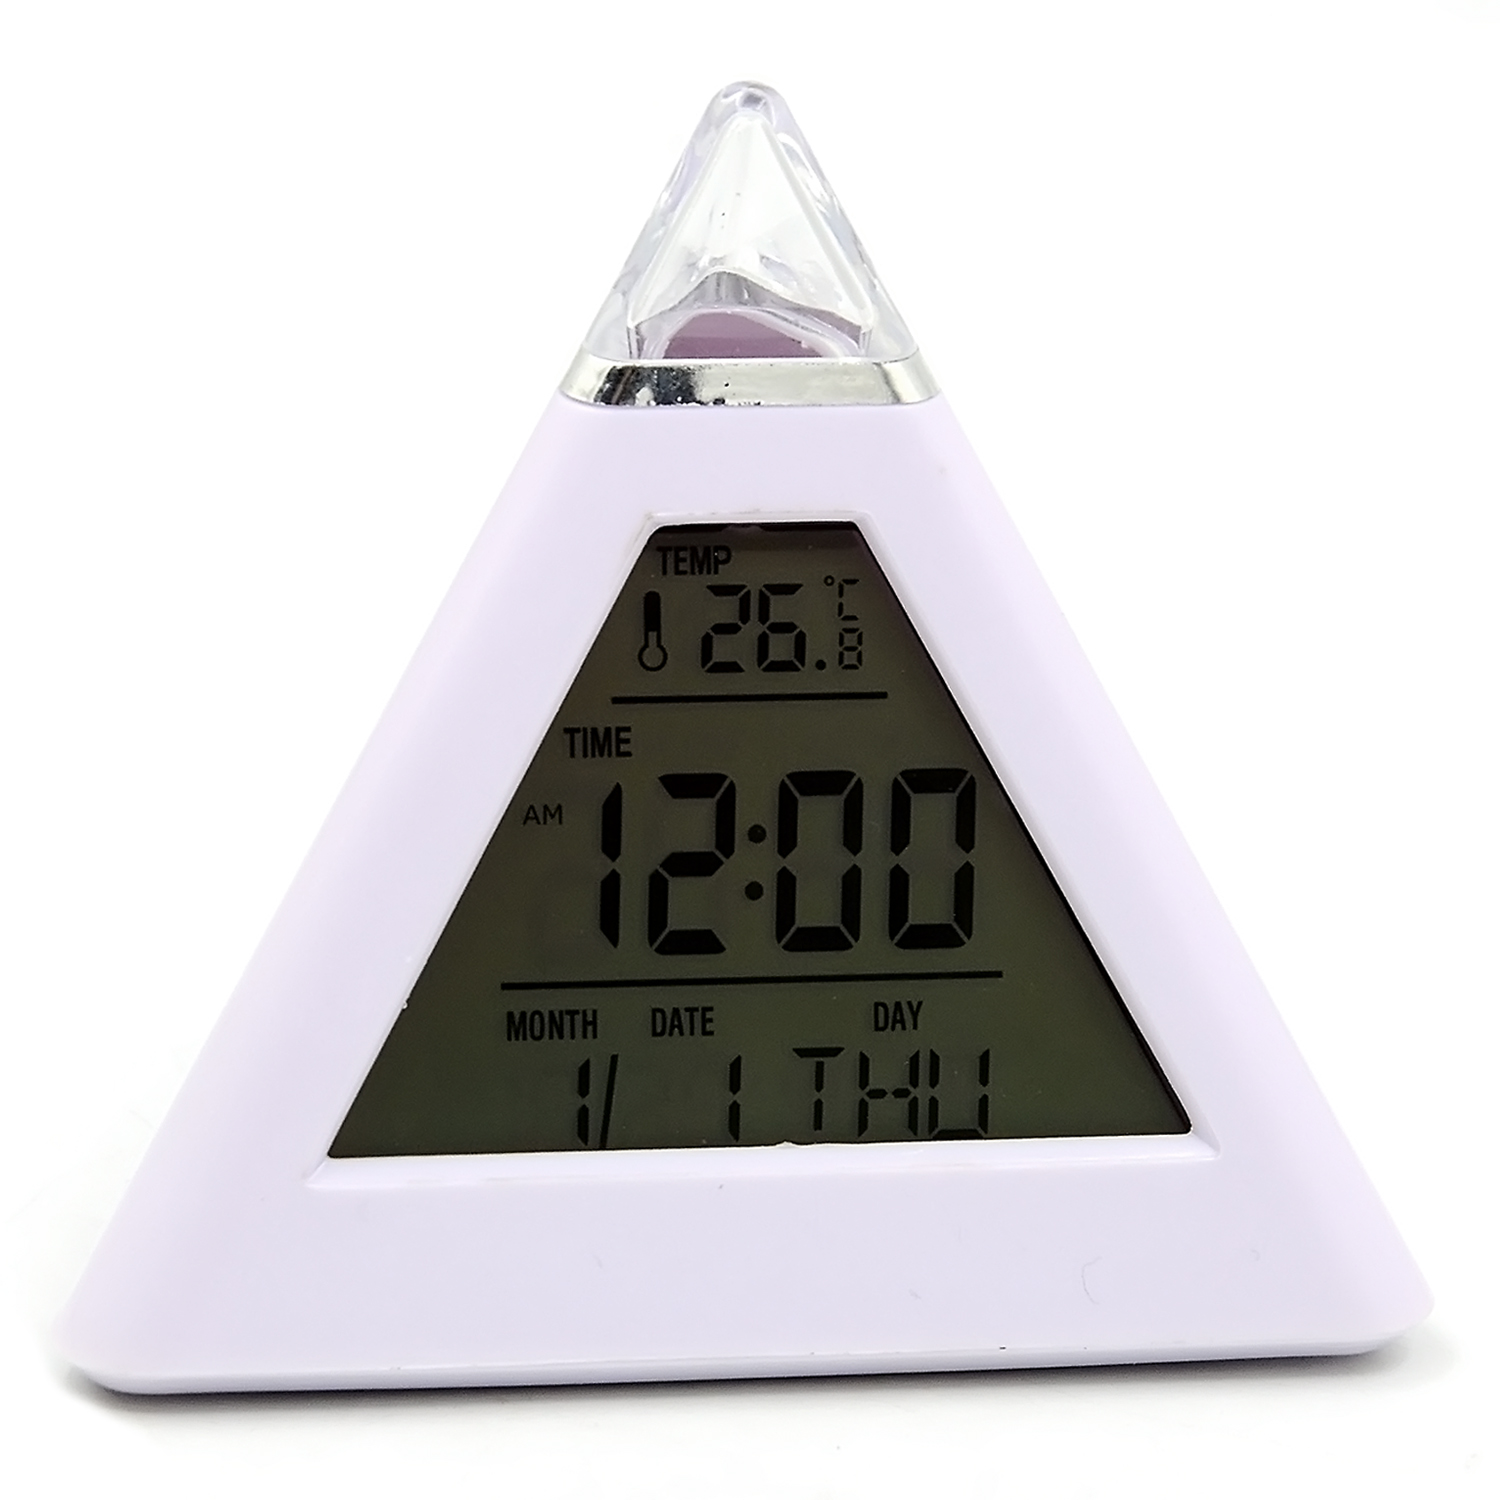 Gosear Multi-function 7 Colors Changing <font><b>LED</b></font> Backlight Alarm Clock LCD Desktop Digital Timer Calendar Thermometer Music Clock